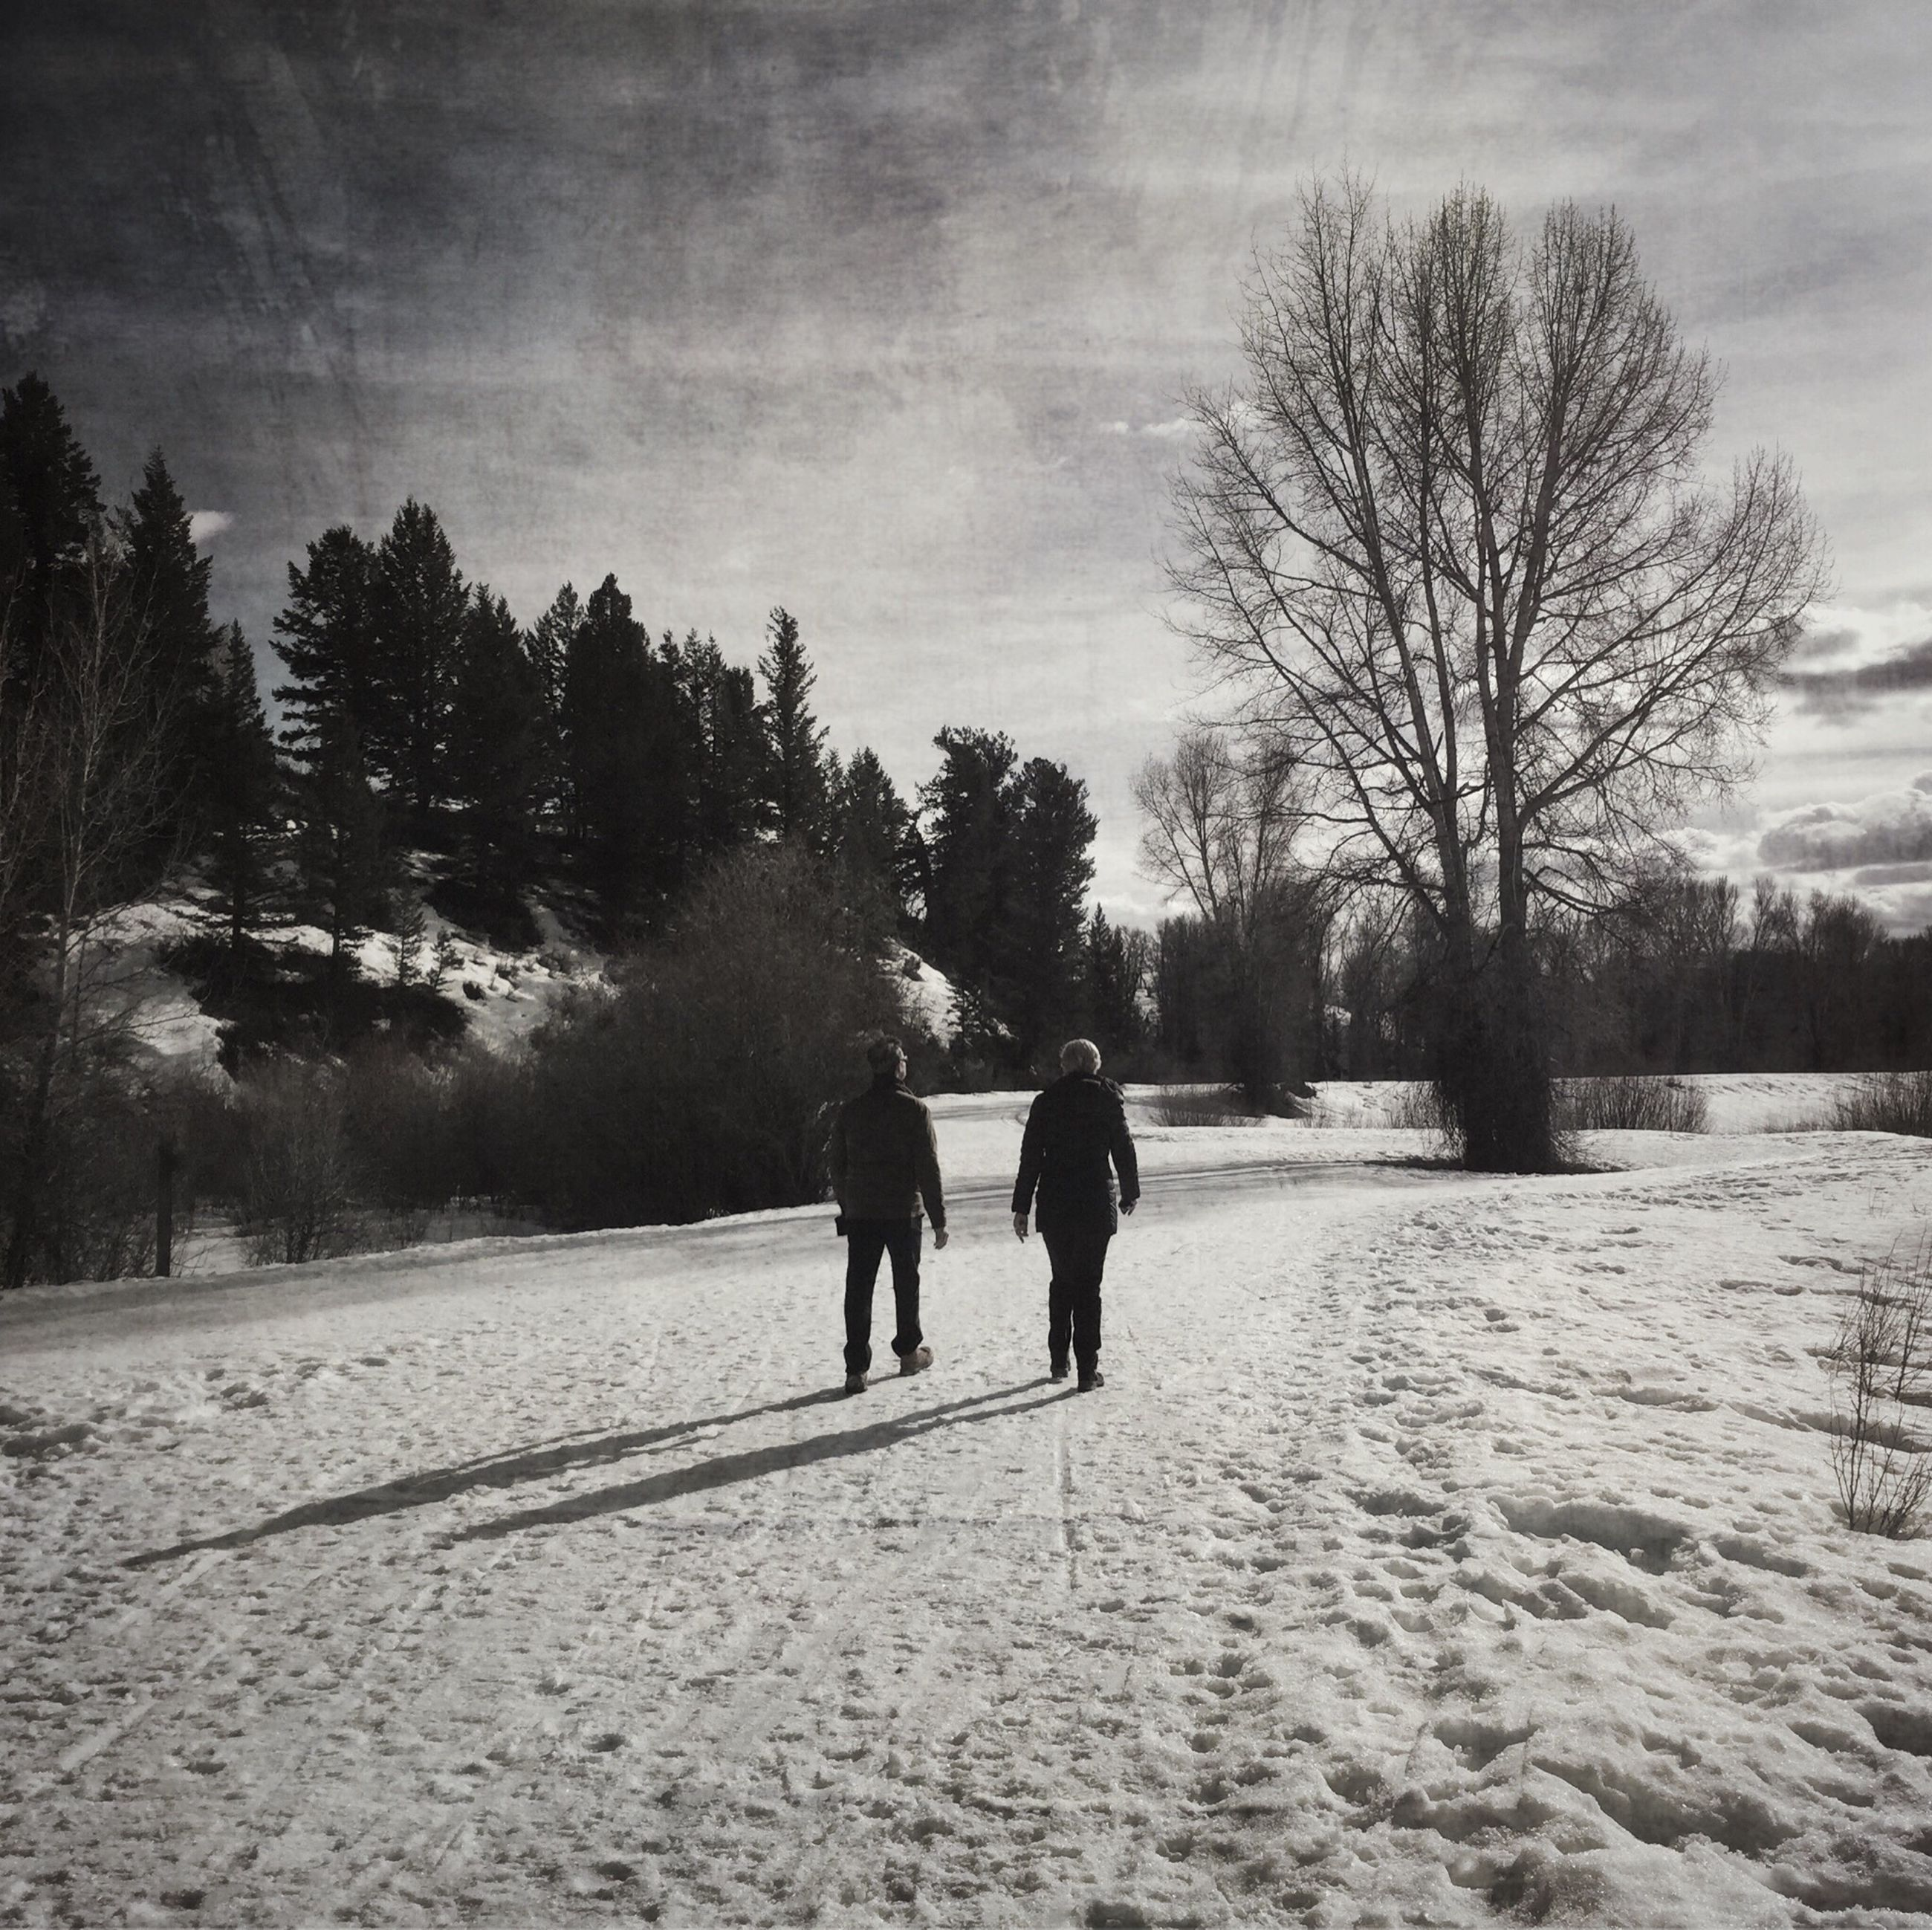 winter, cold temperature, snow, tree, season, rear view, walking, weather, bare tree, full length, men, lifestyles, sky, leisure activity, togetherness, the way forward, nature, person